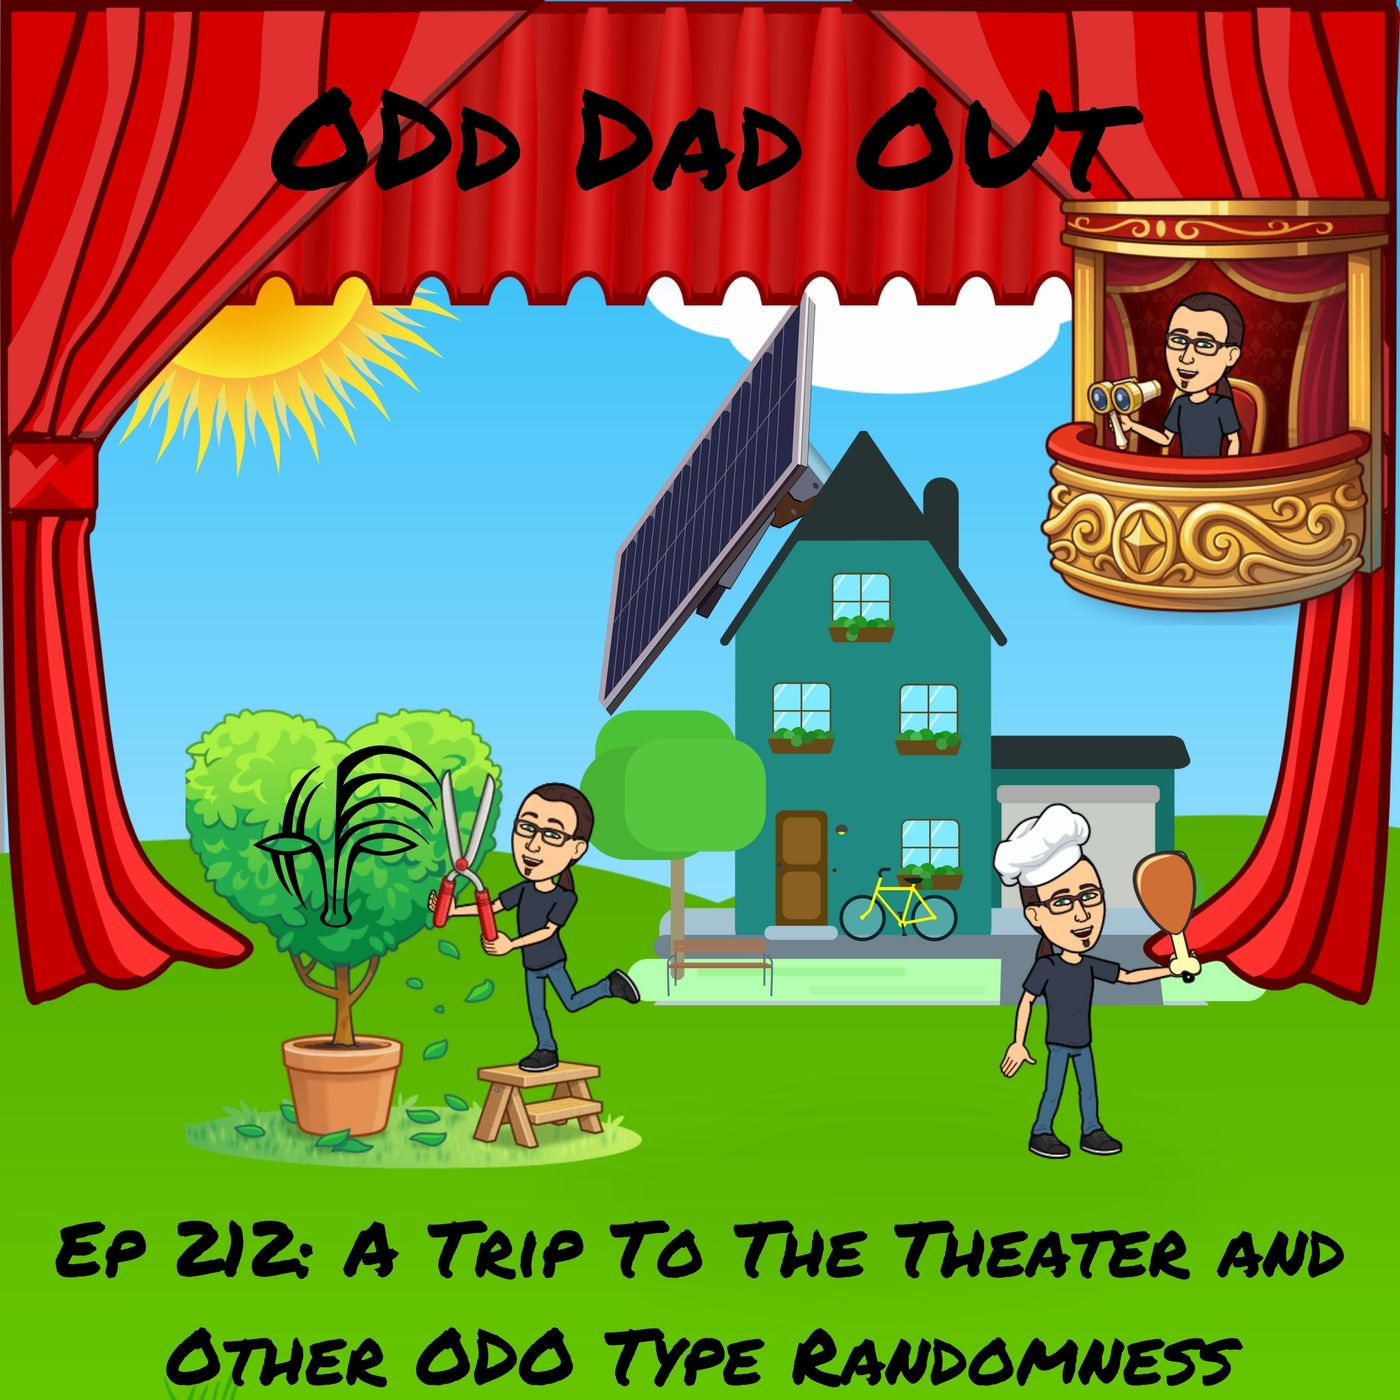 A Trip To The Theater and Other ODO Type Randomness: ODO 212